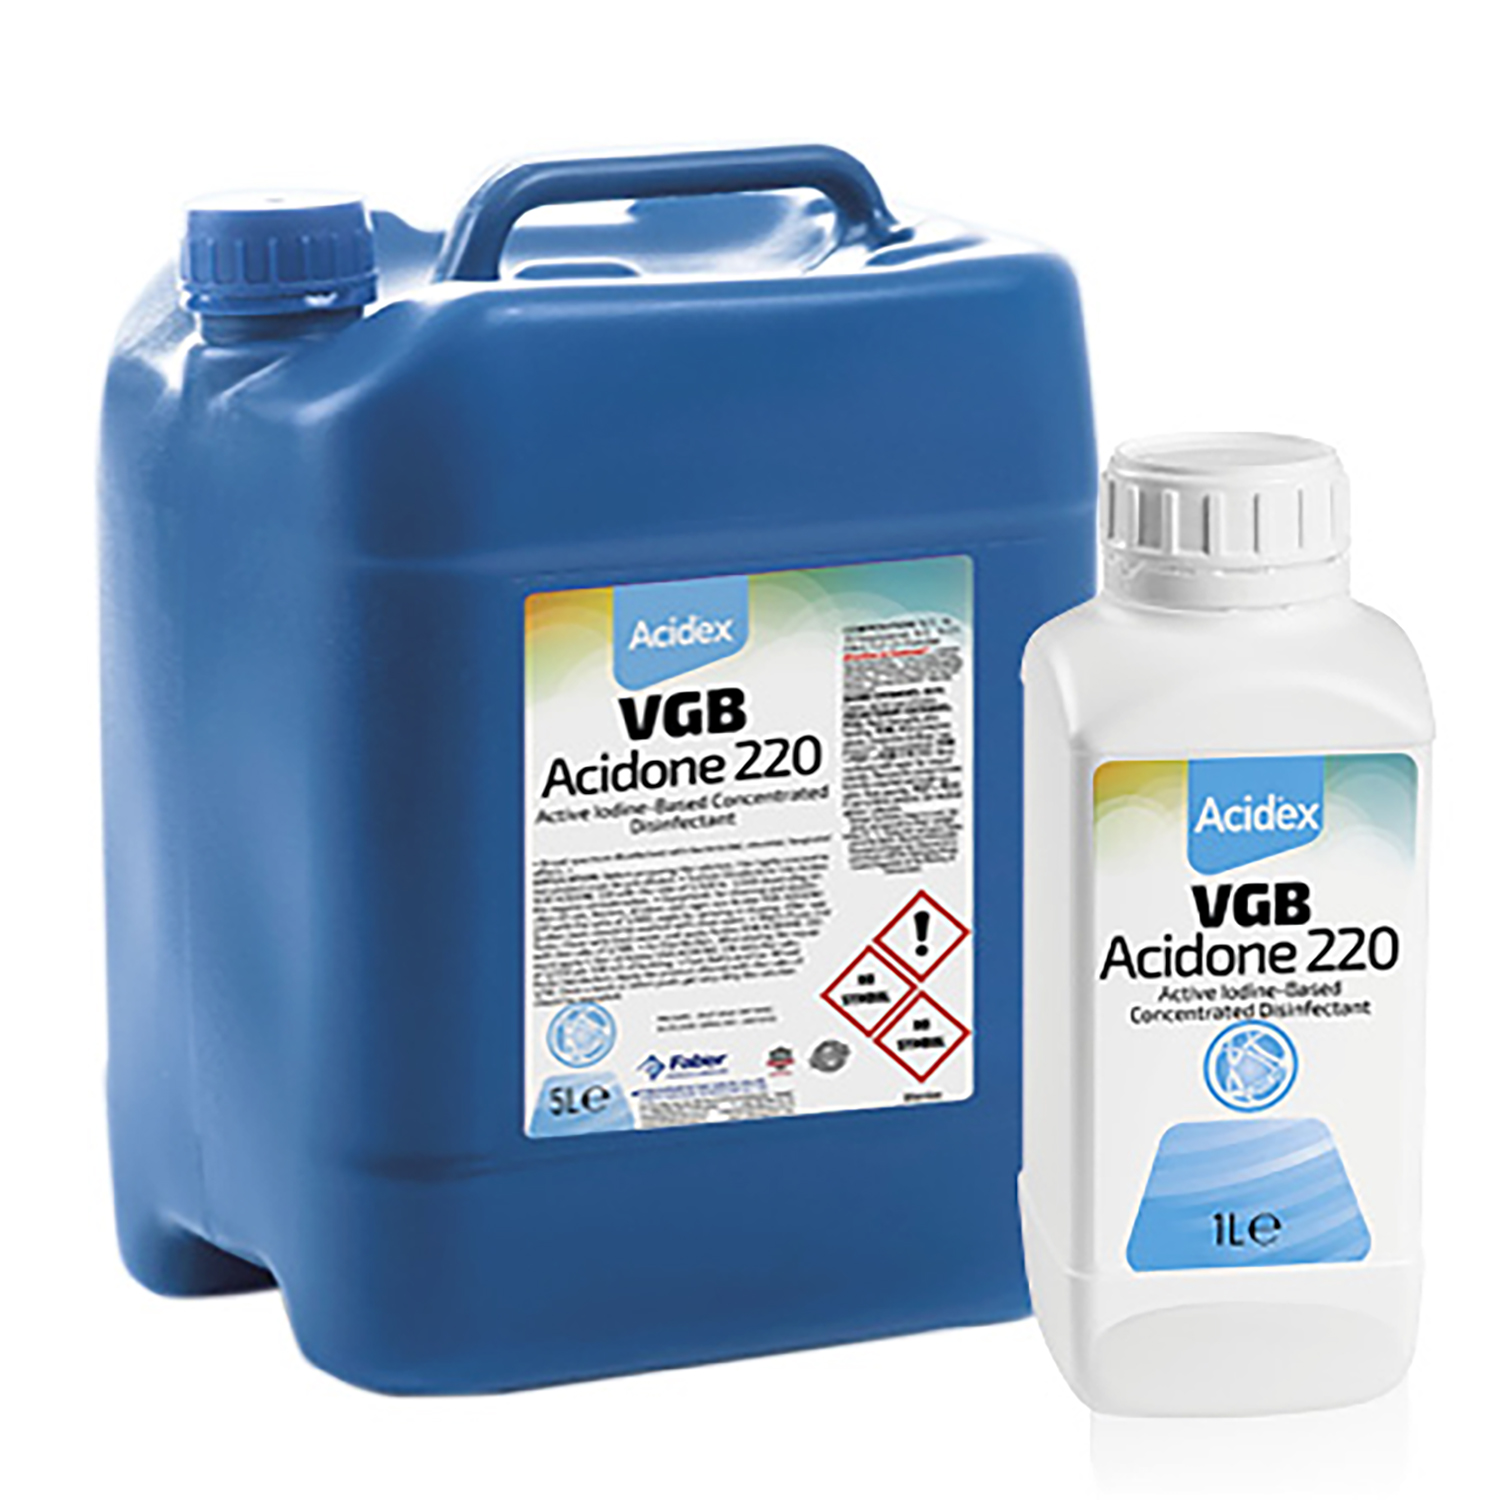 Acidex VGB Acidone 220